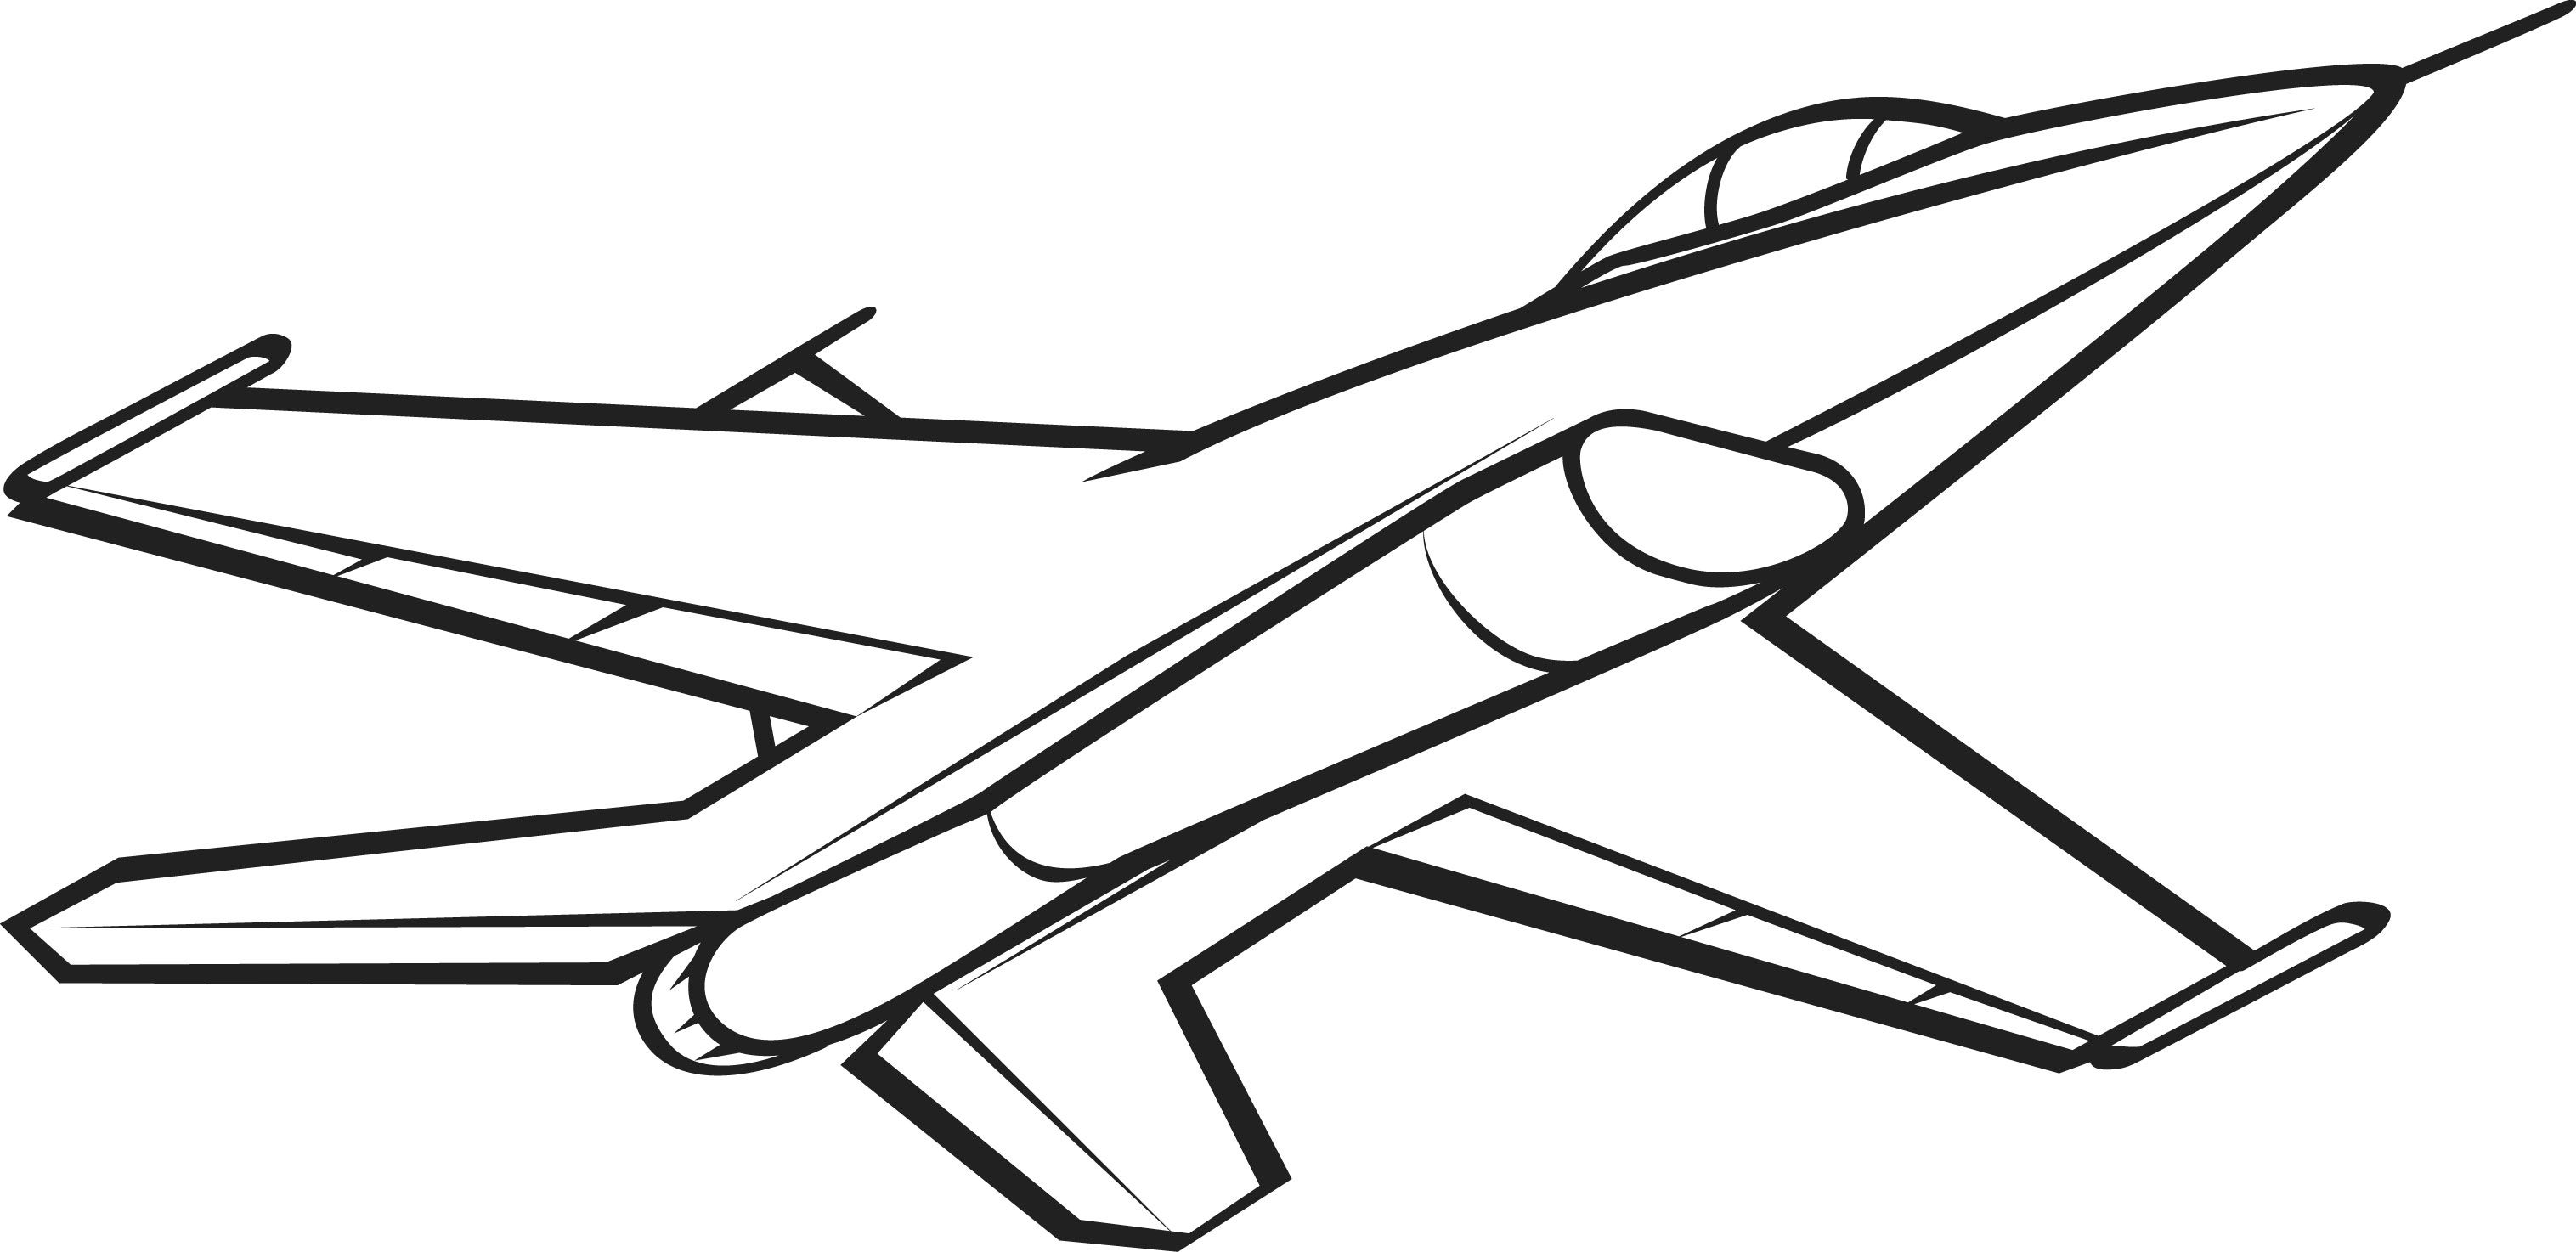 Airplane coloring pages colorful drawings colorful pictures clipart black and white coloring